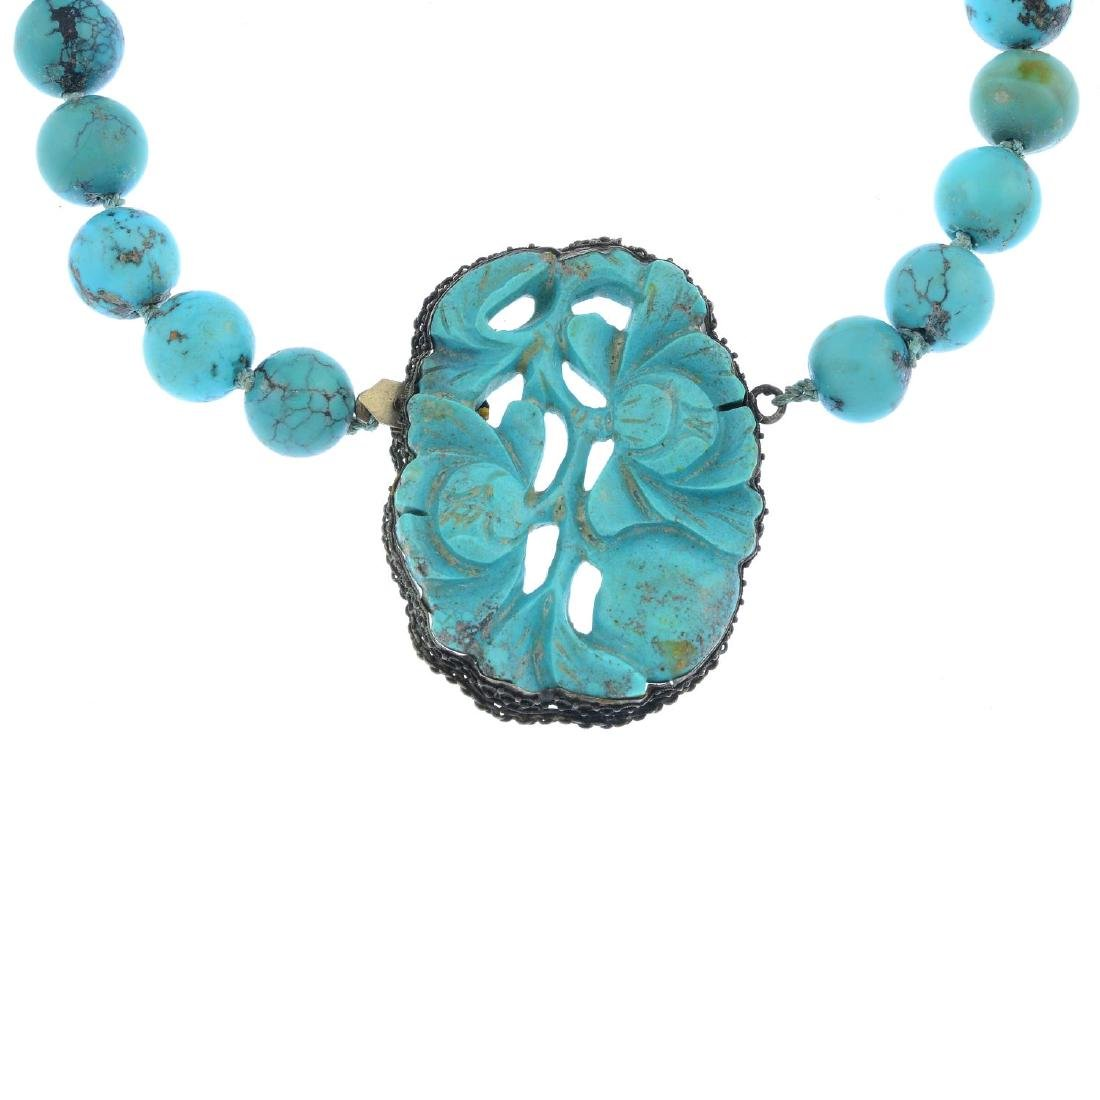 A Chinese carved turquoise necklace. Comprising a